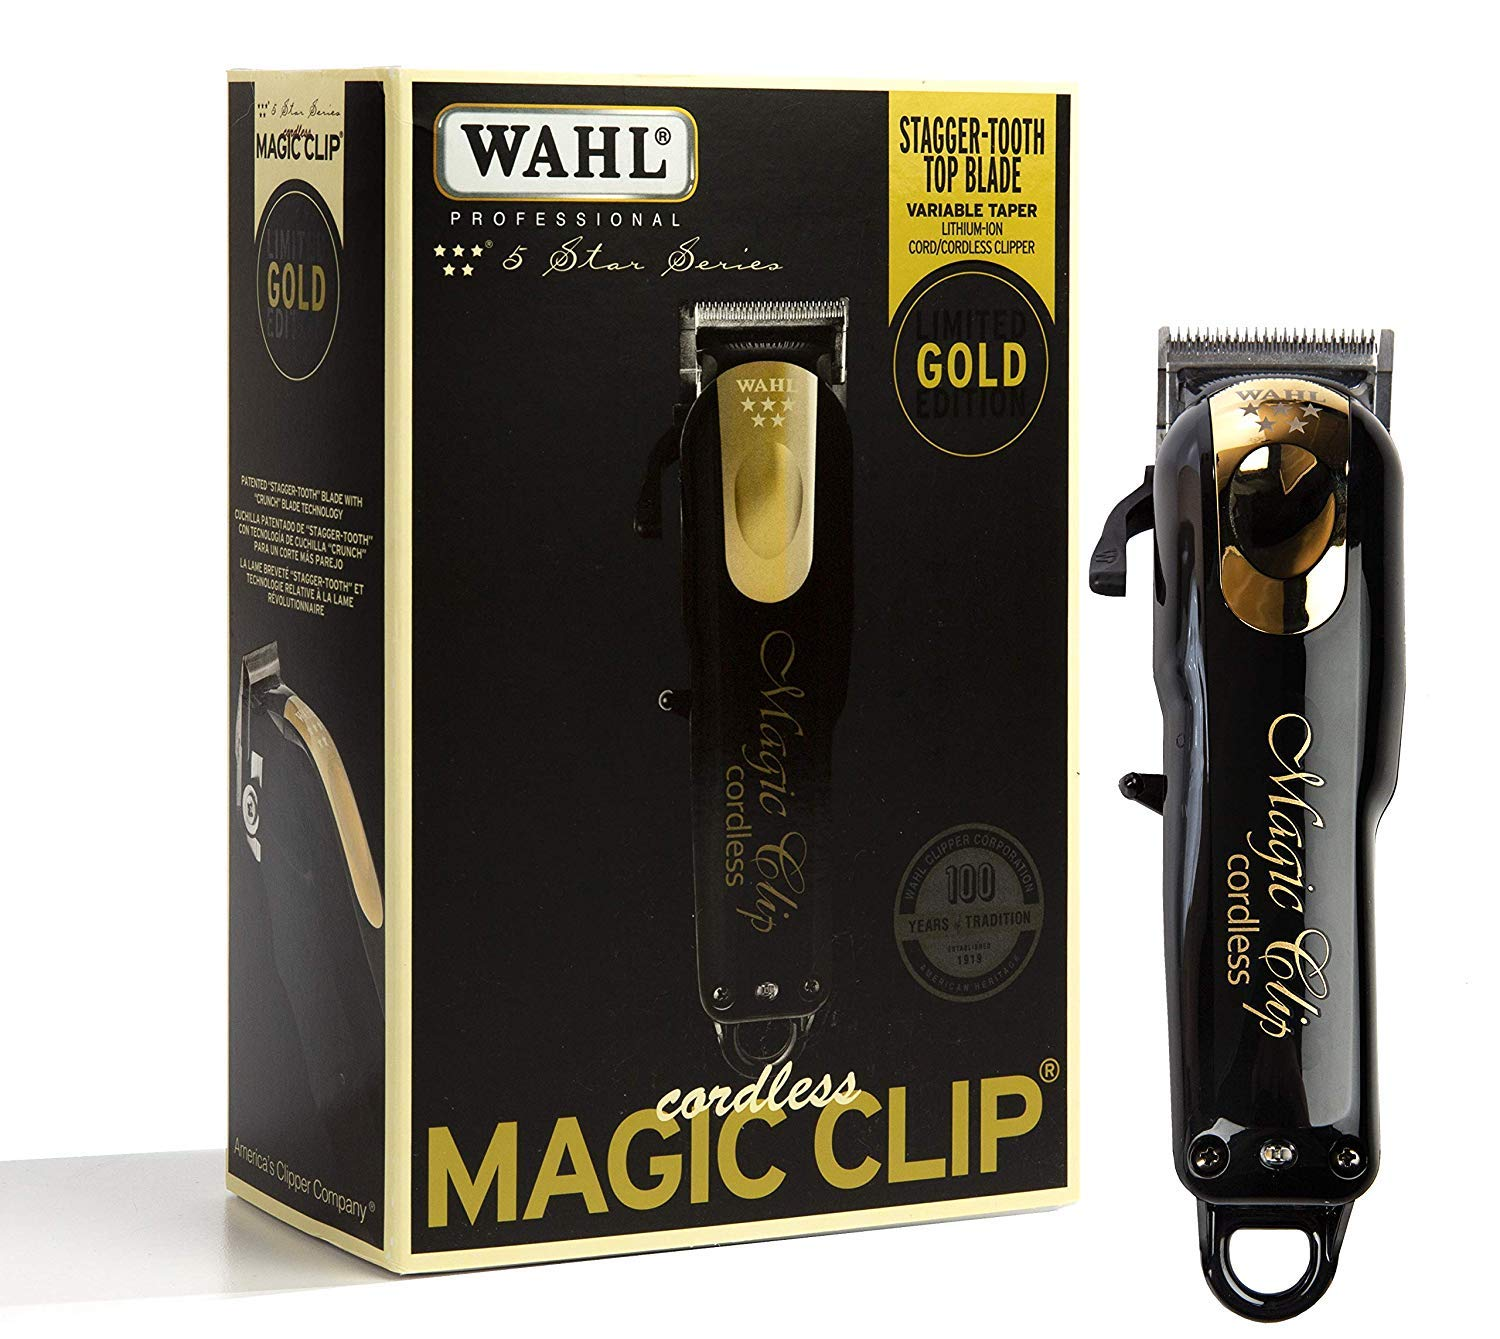 Wahl Professional 5-Star Limited Edition Black & Gold Cordless Magic Clip #8148-100 - Great for Barbers and Stylists - Precision Cordless Fade Clipper Loaded with Features - 71T4Y 8K1JL - Wahl Professional 5-Star Limited Edition Black & Gold Cordless Magic Clip #8148-100 – Great for Barbers and Stylists – Precision Cordless Fade Clipper Loaded with Features